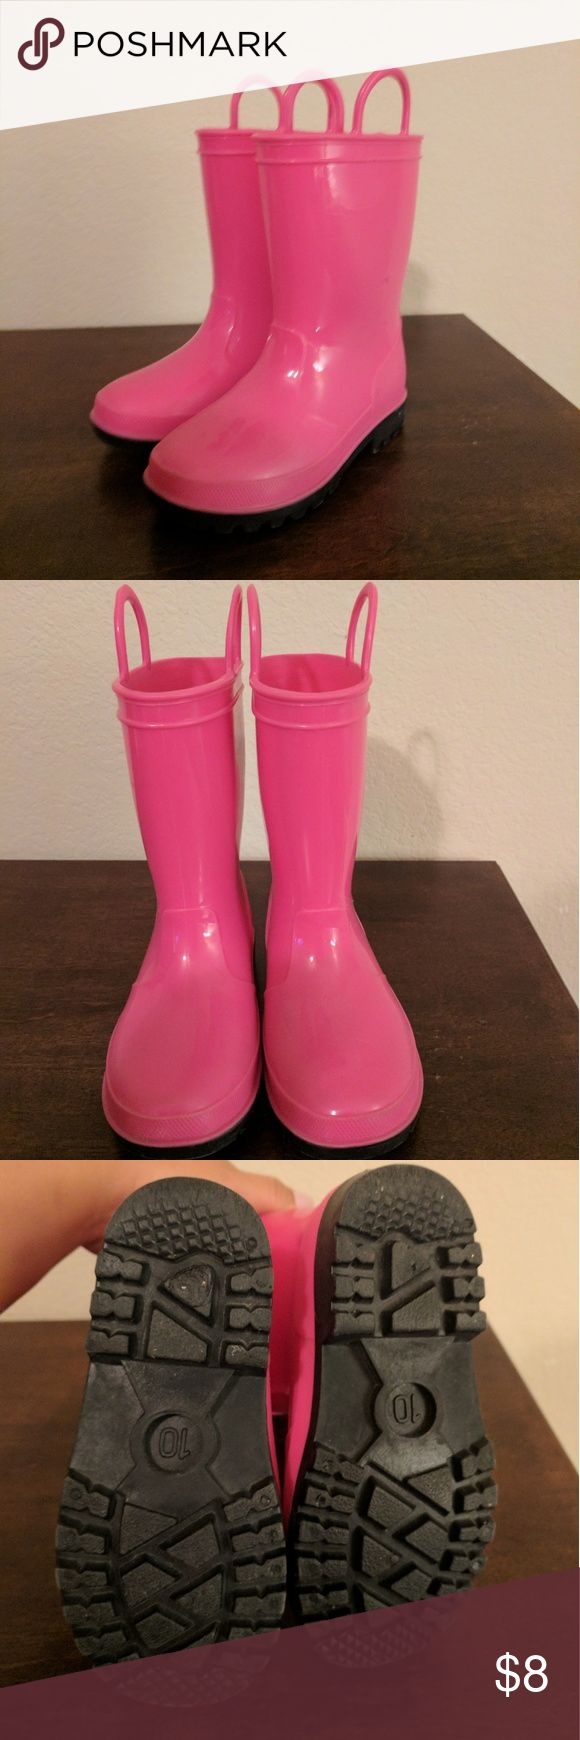 Pink Rain Boots Cute pink rain boots. Gently used. My little girl outgrew them, but they were great for splashing in puddles. Shoes Rain & Snow Boots